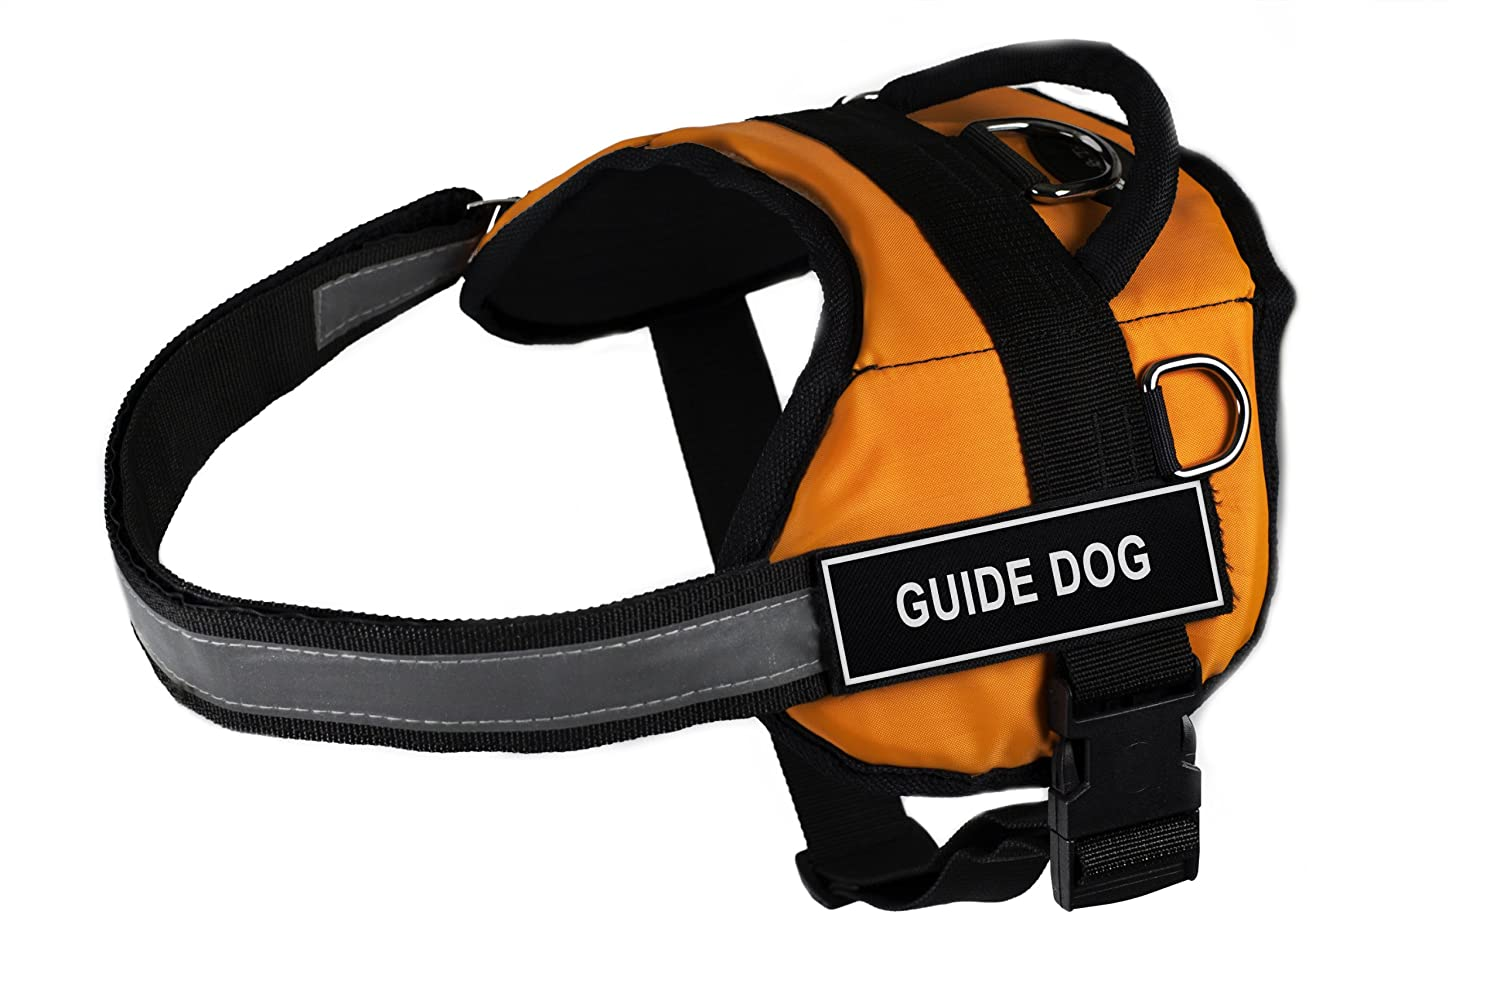 Dean & Tyler DT Works Harness Guide Dog Pet Harness, Large, Fits Girth Size 34-Inch to 47-Inch, orange Black